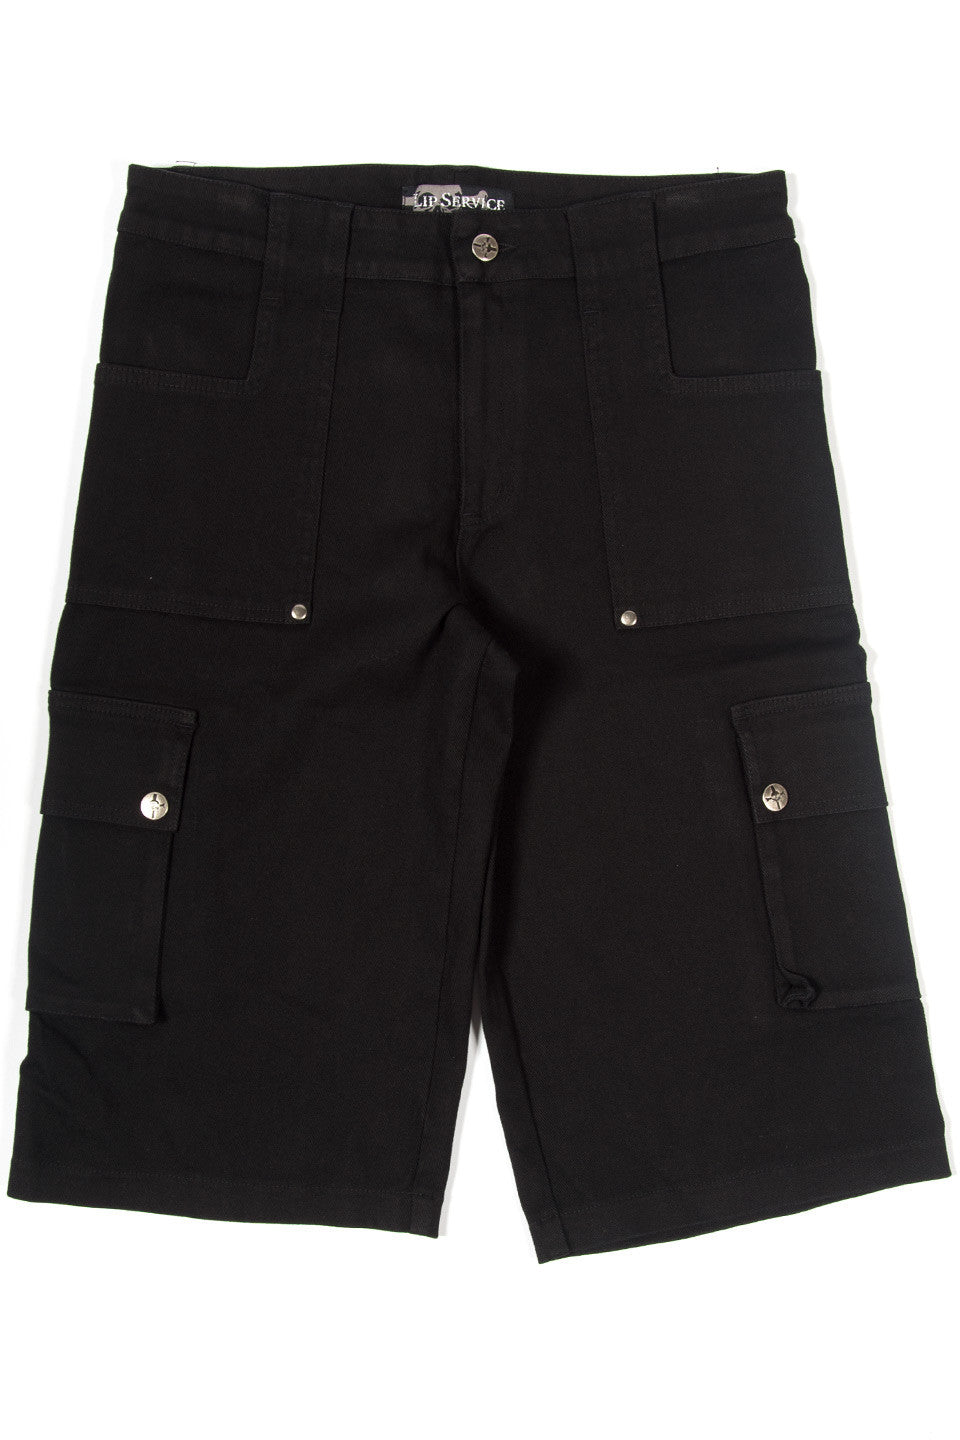 Vintage Black Cargo Shorts-Bottoms-Lip Service